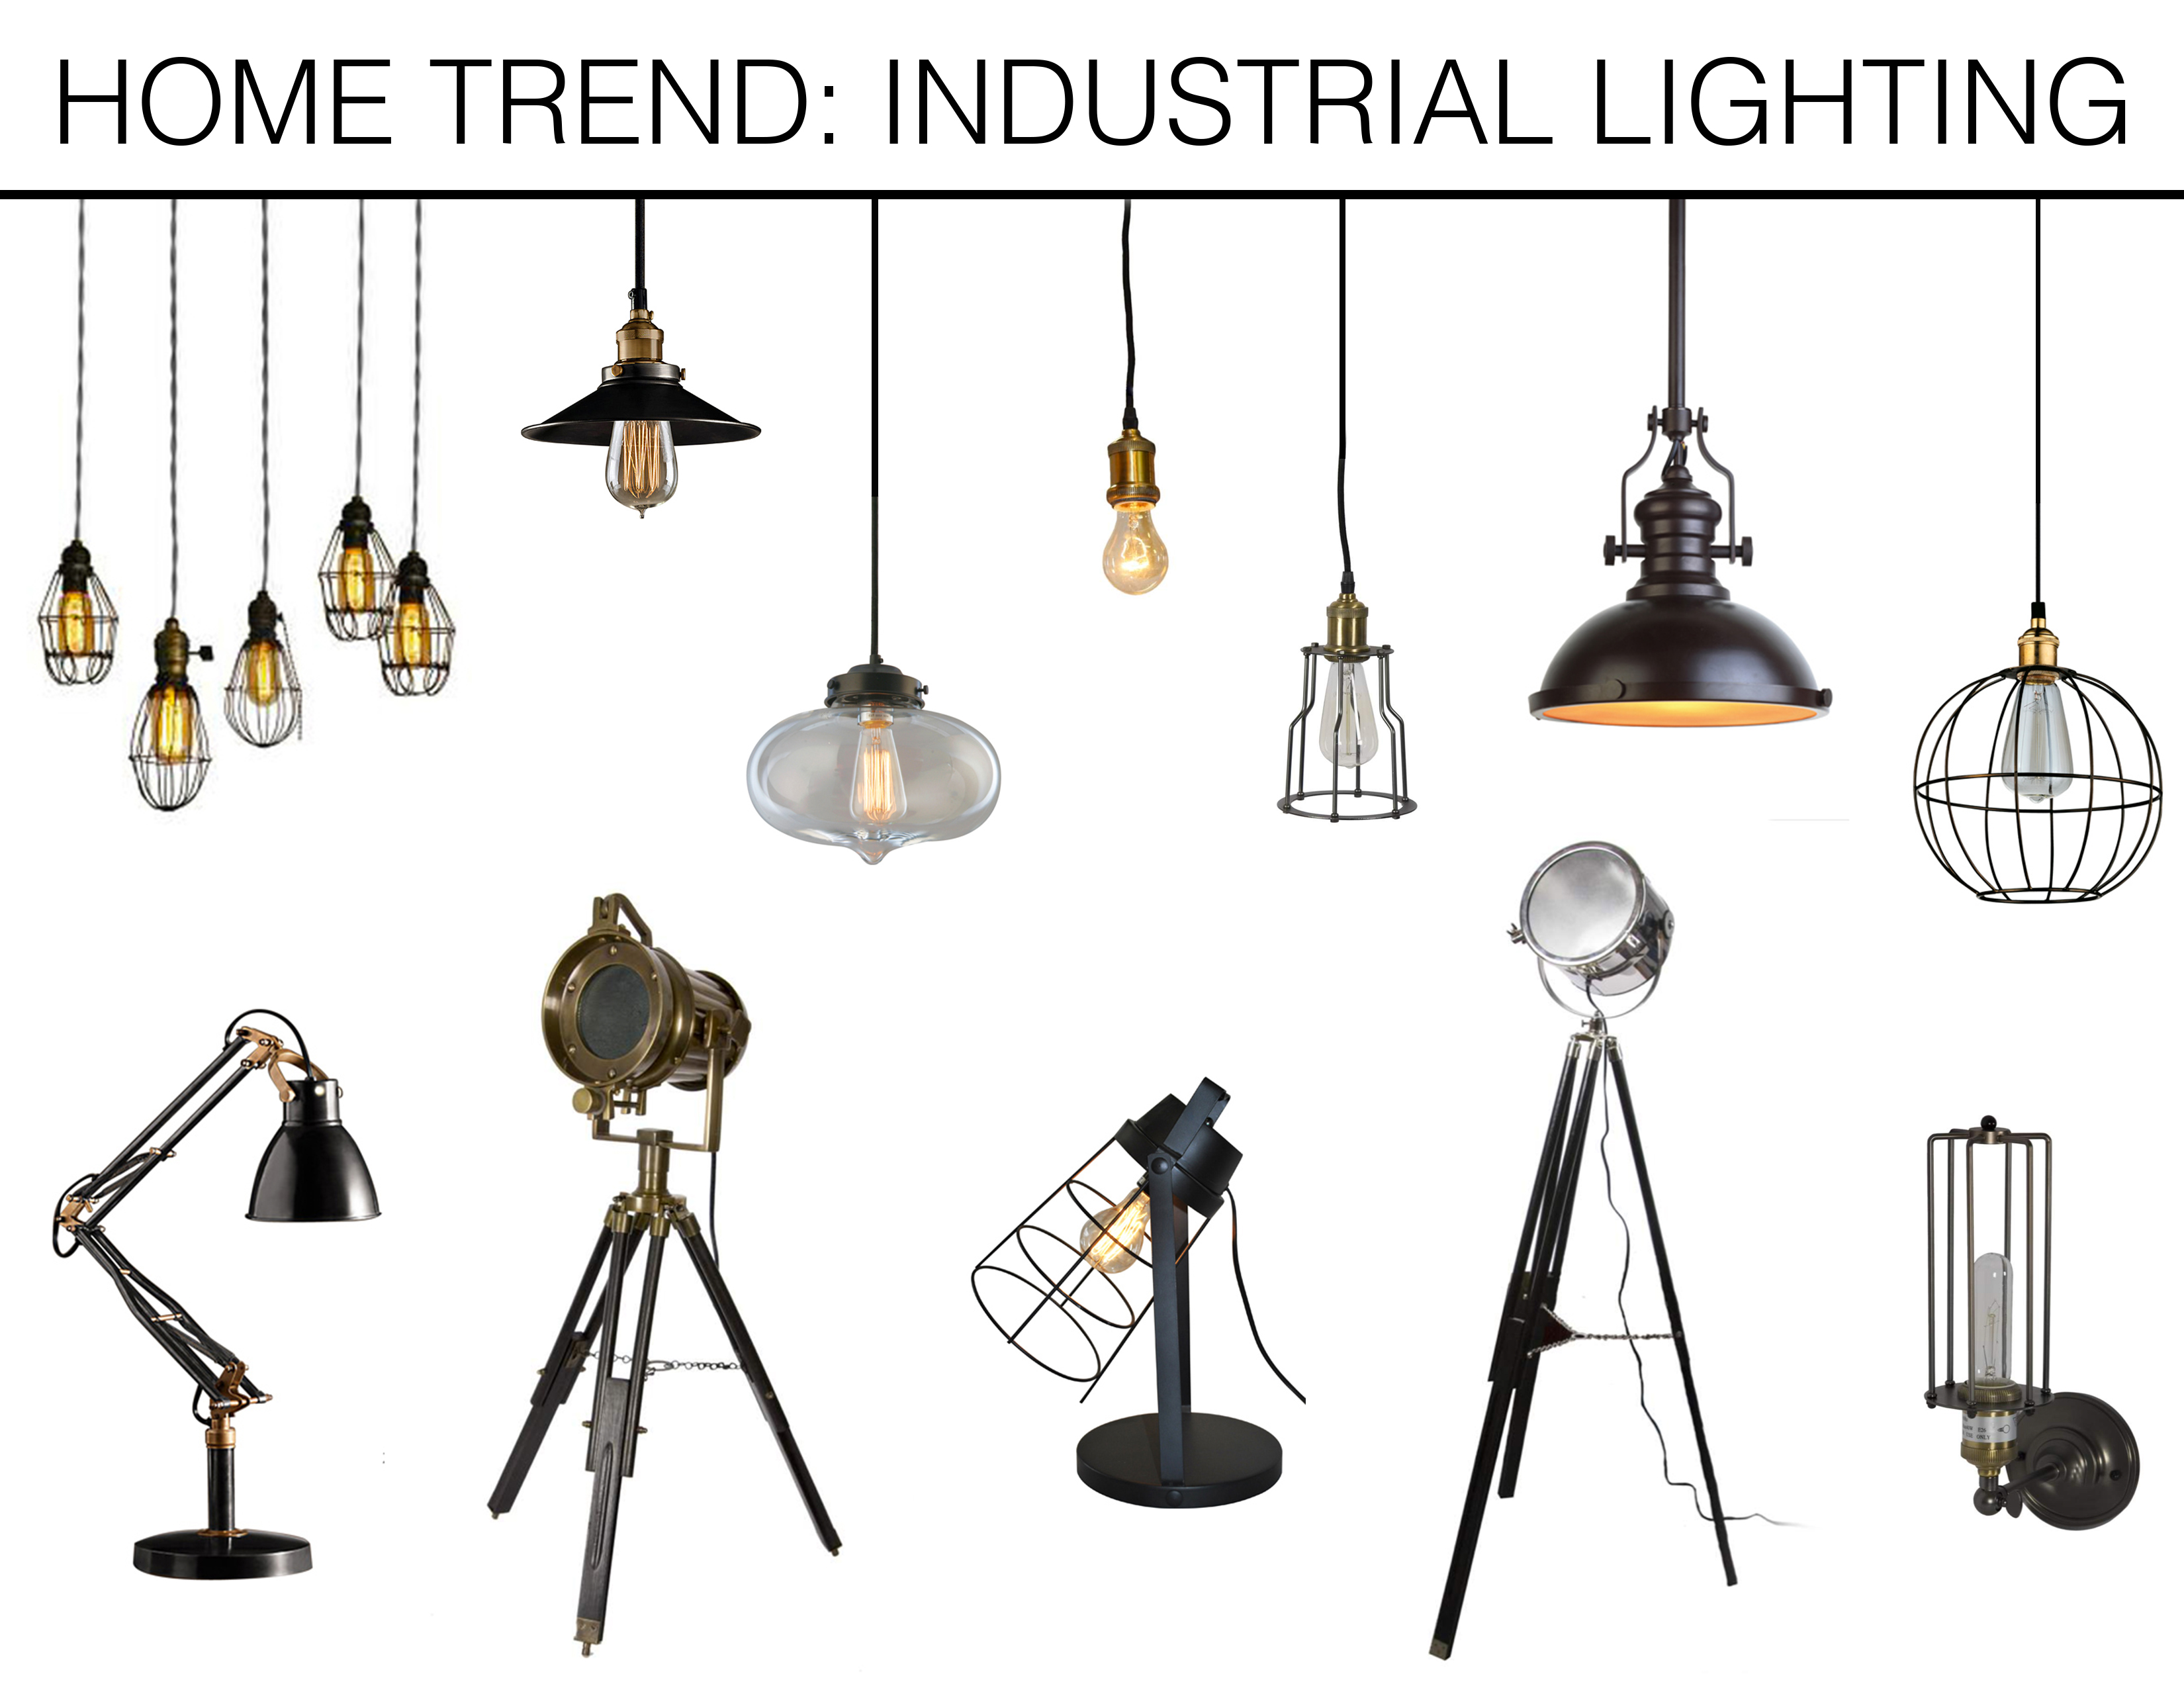 industrial home lighting. Interior Industrial Home Lighting E